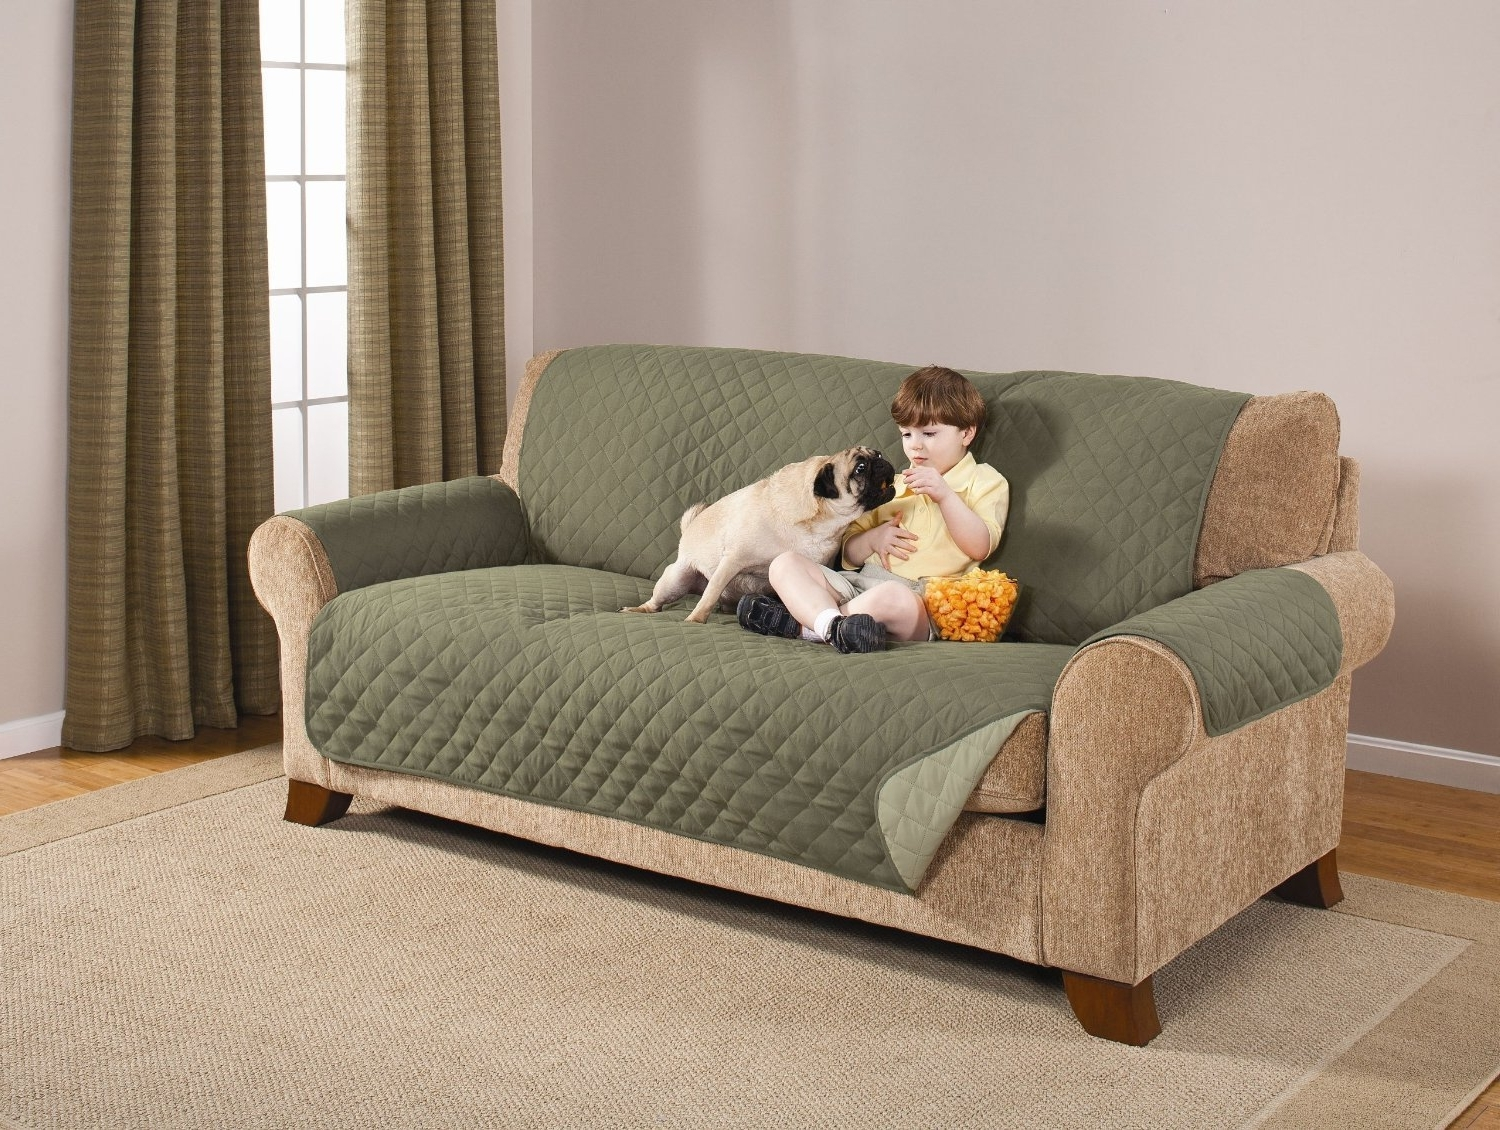 Recent Top 10 Best Sofa Covers For Pets – Pet Sofa Covers To Keep Clean With Regard To Wide Sofa Chairs (View 8 of 15)